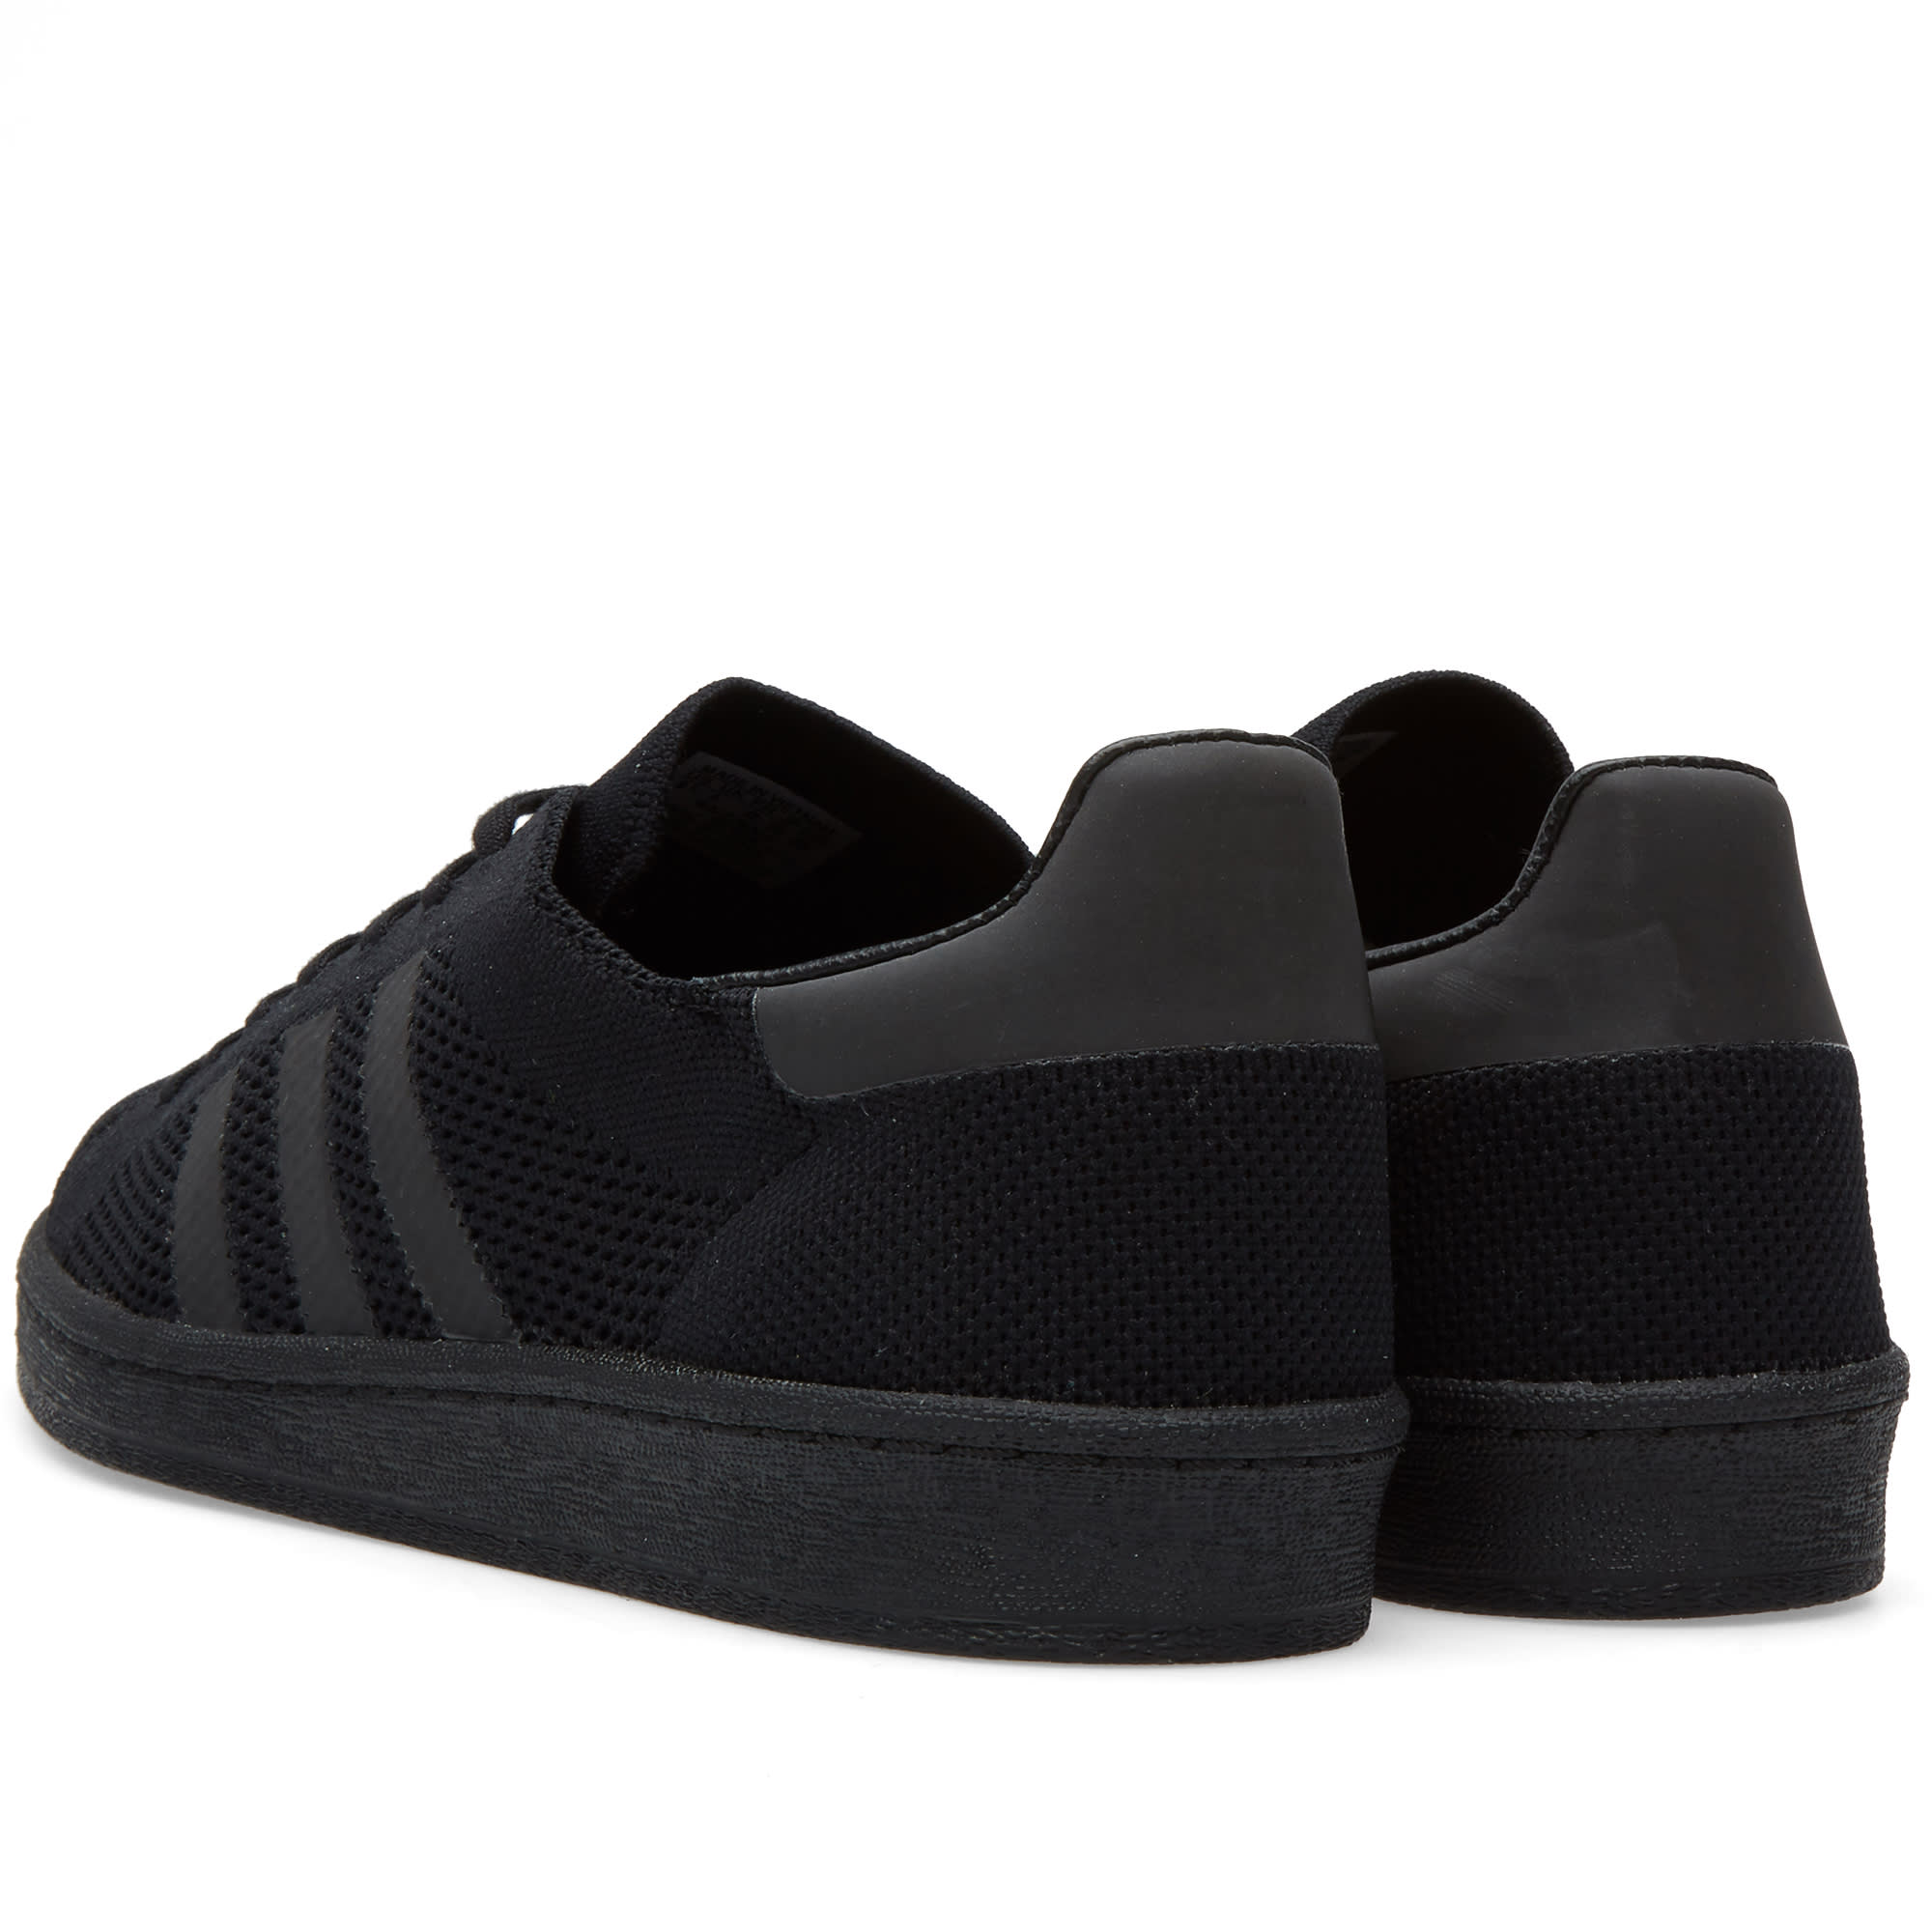 official photos 33e80 70033 Adidas Campus 80s Primeknit Core Black   END.